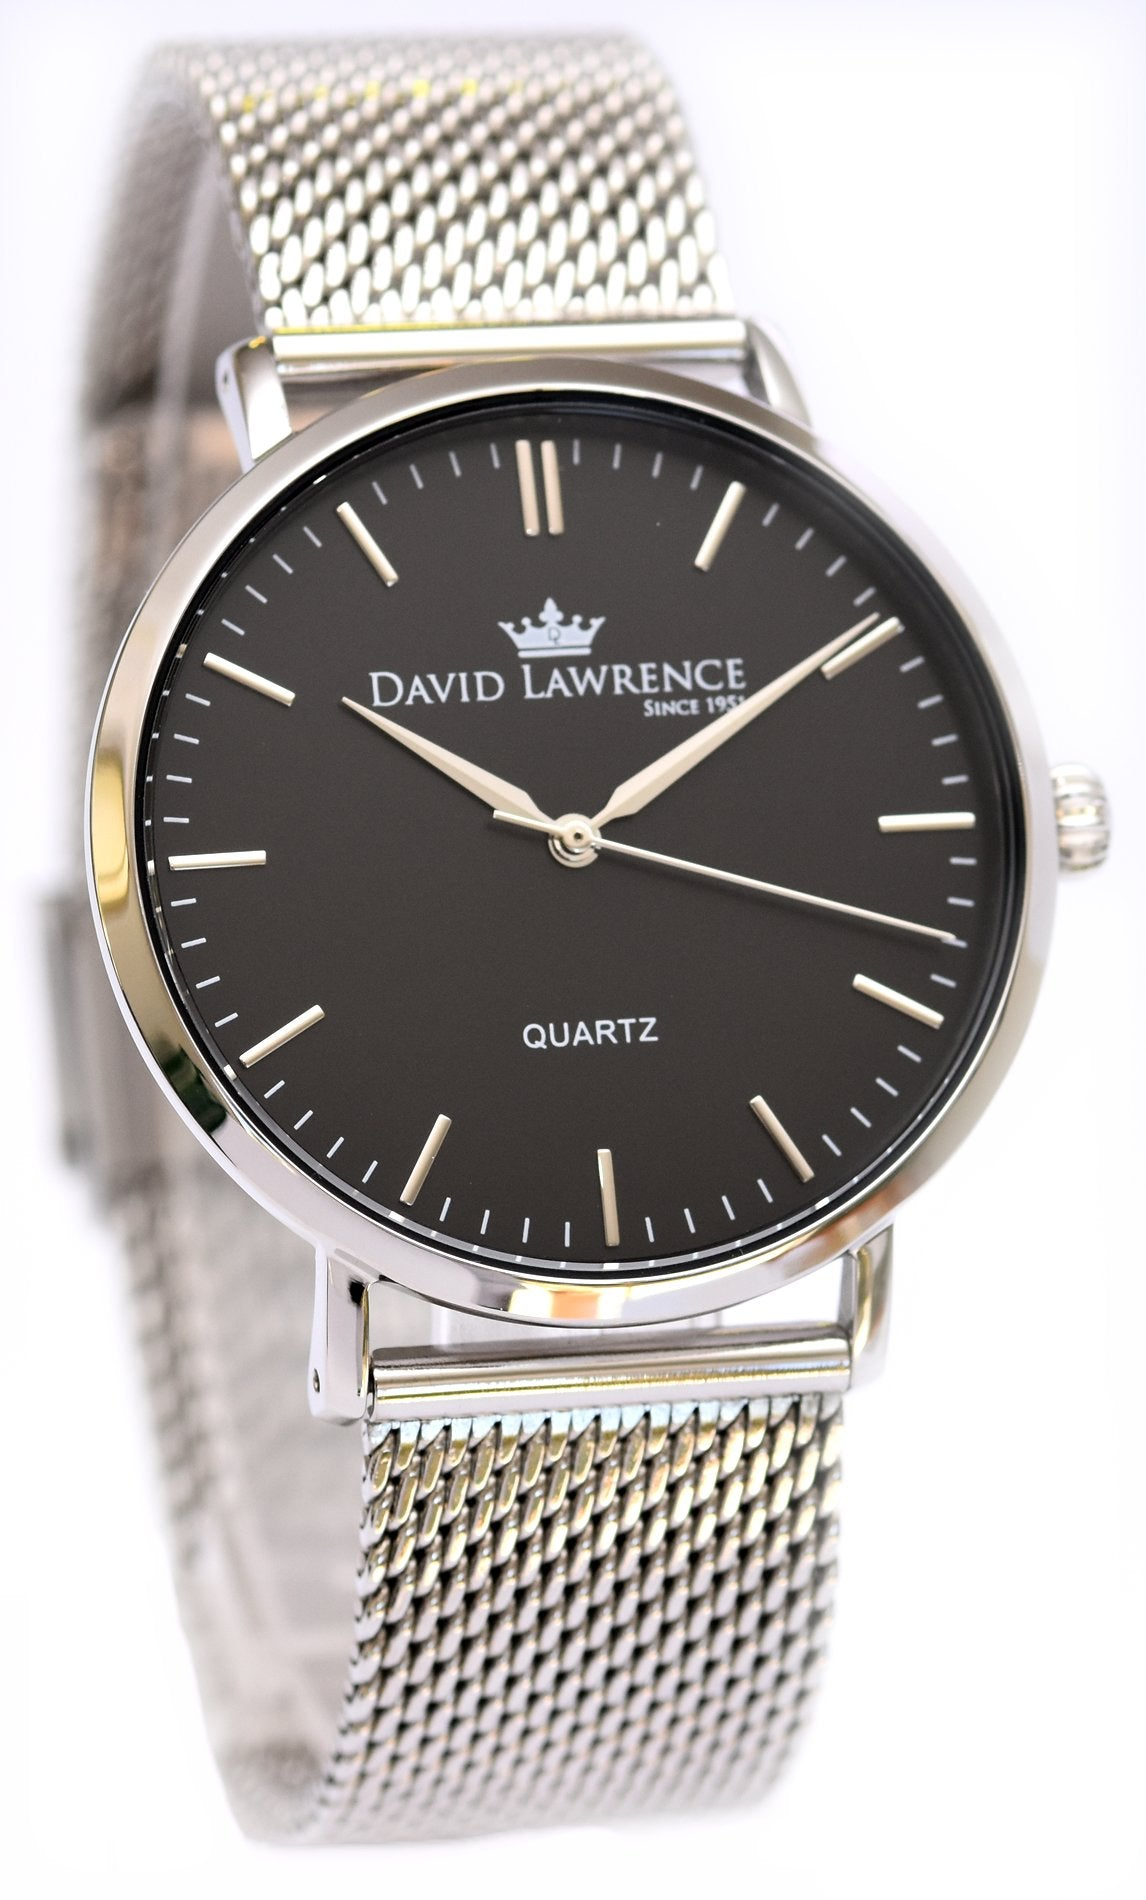 SOVEREIGN 50803-2 by David Lawrence Watches